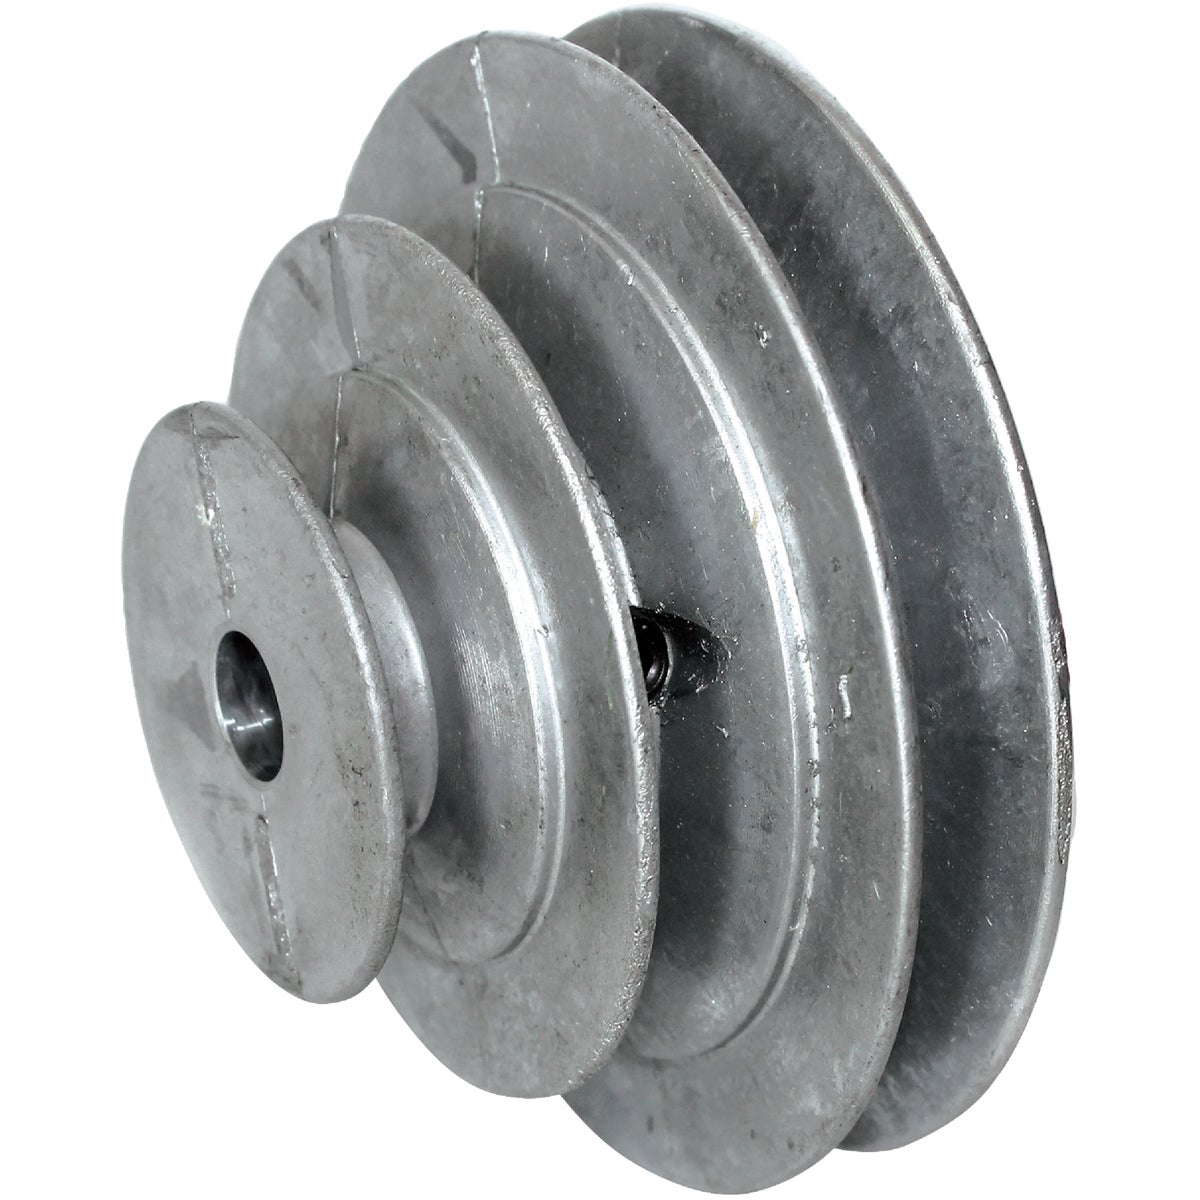 "3/4"" 3-STEP CONE PULLEY - 146-7 by Chicago Die Casting"